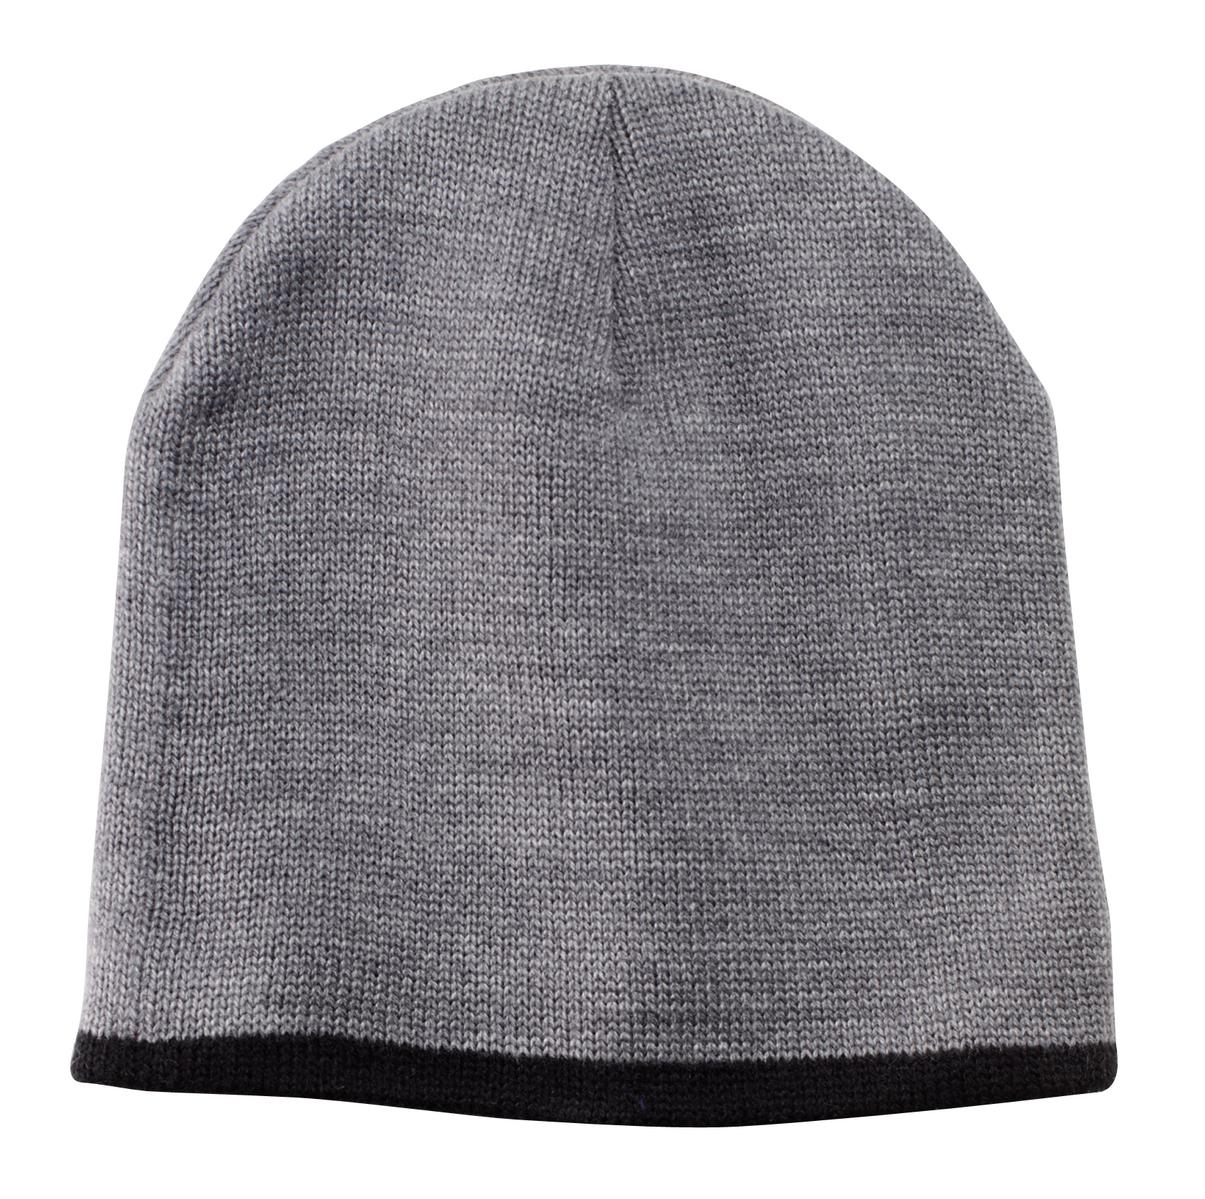 Port & Company ®  Beanie Cap.  CP91 - Athletic  Oxford/ Black